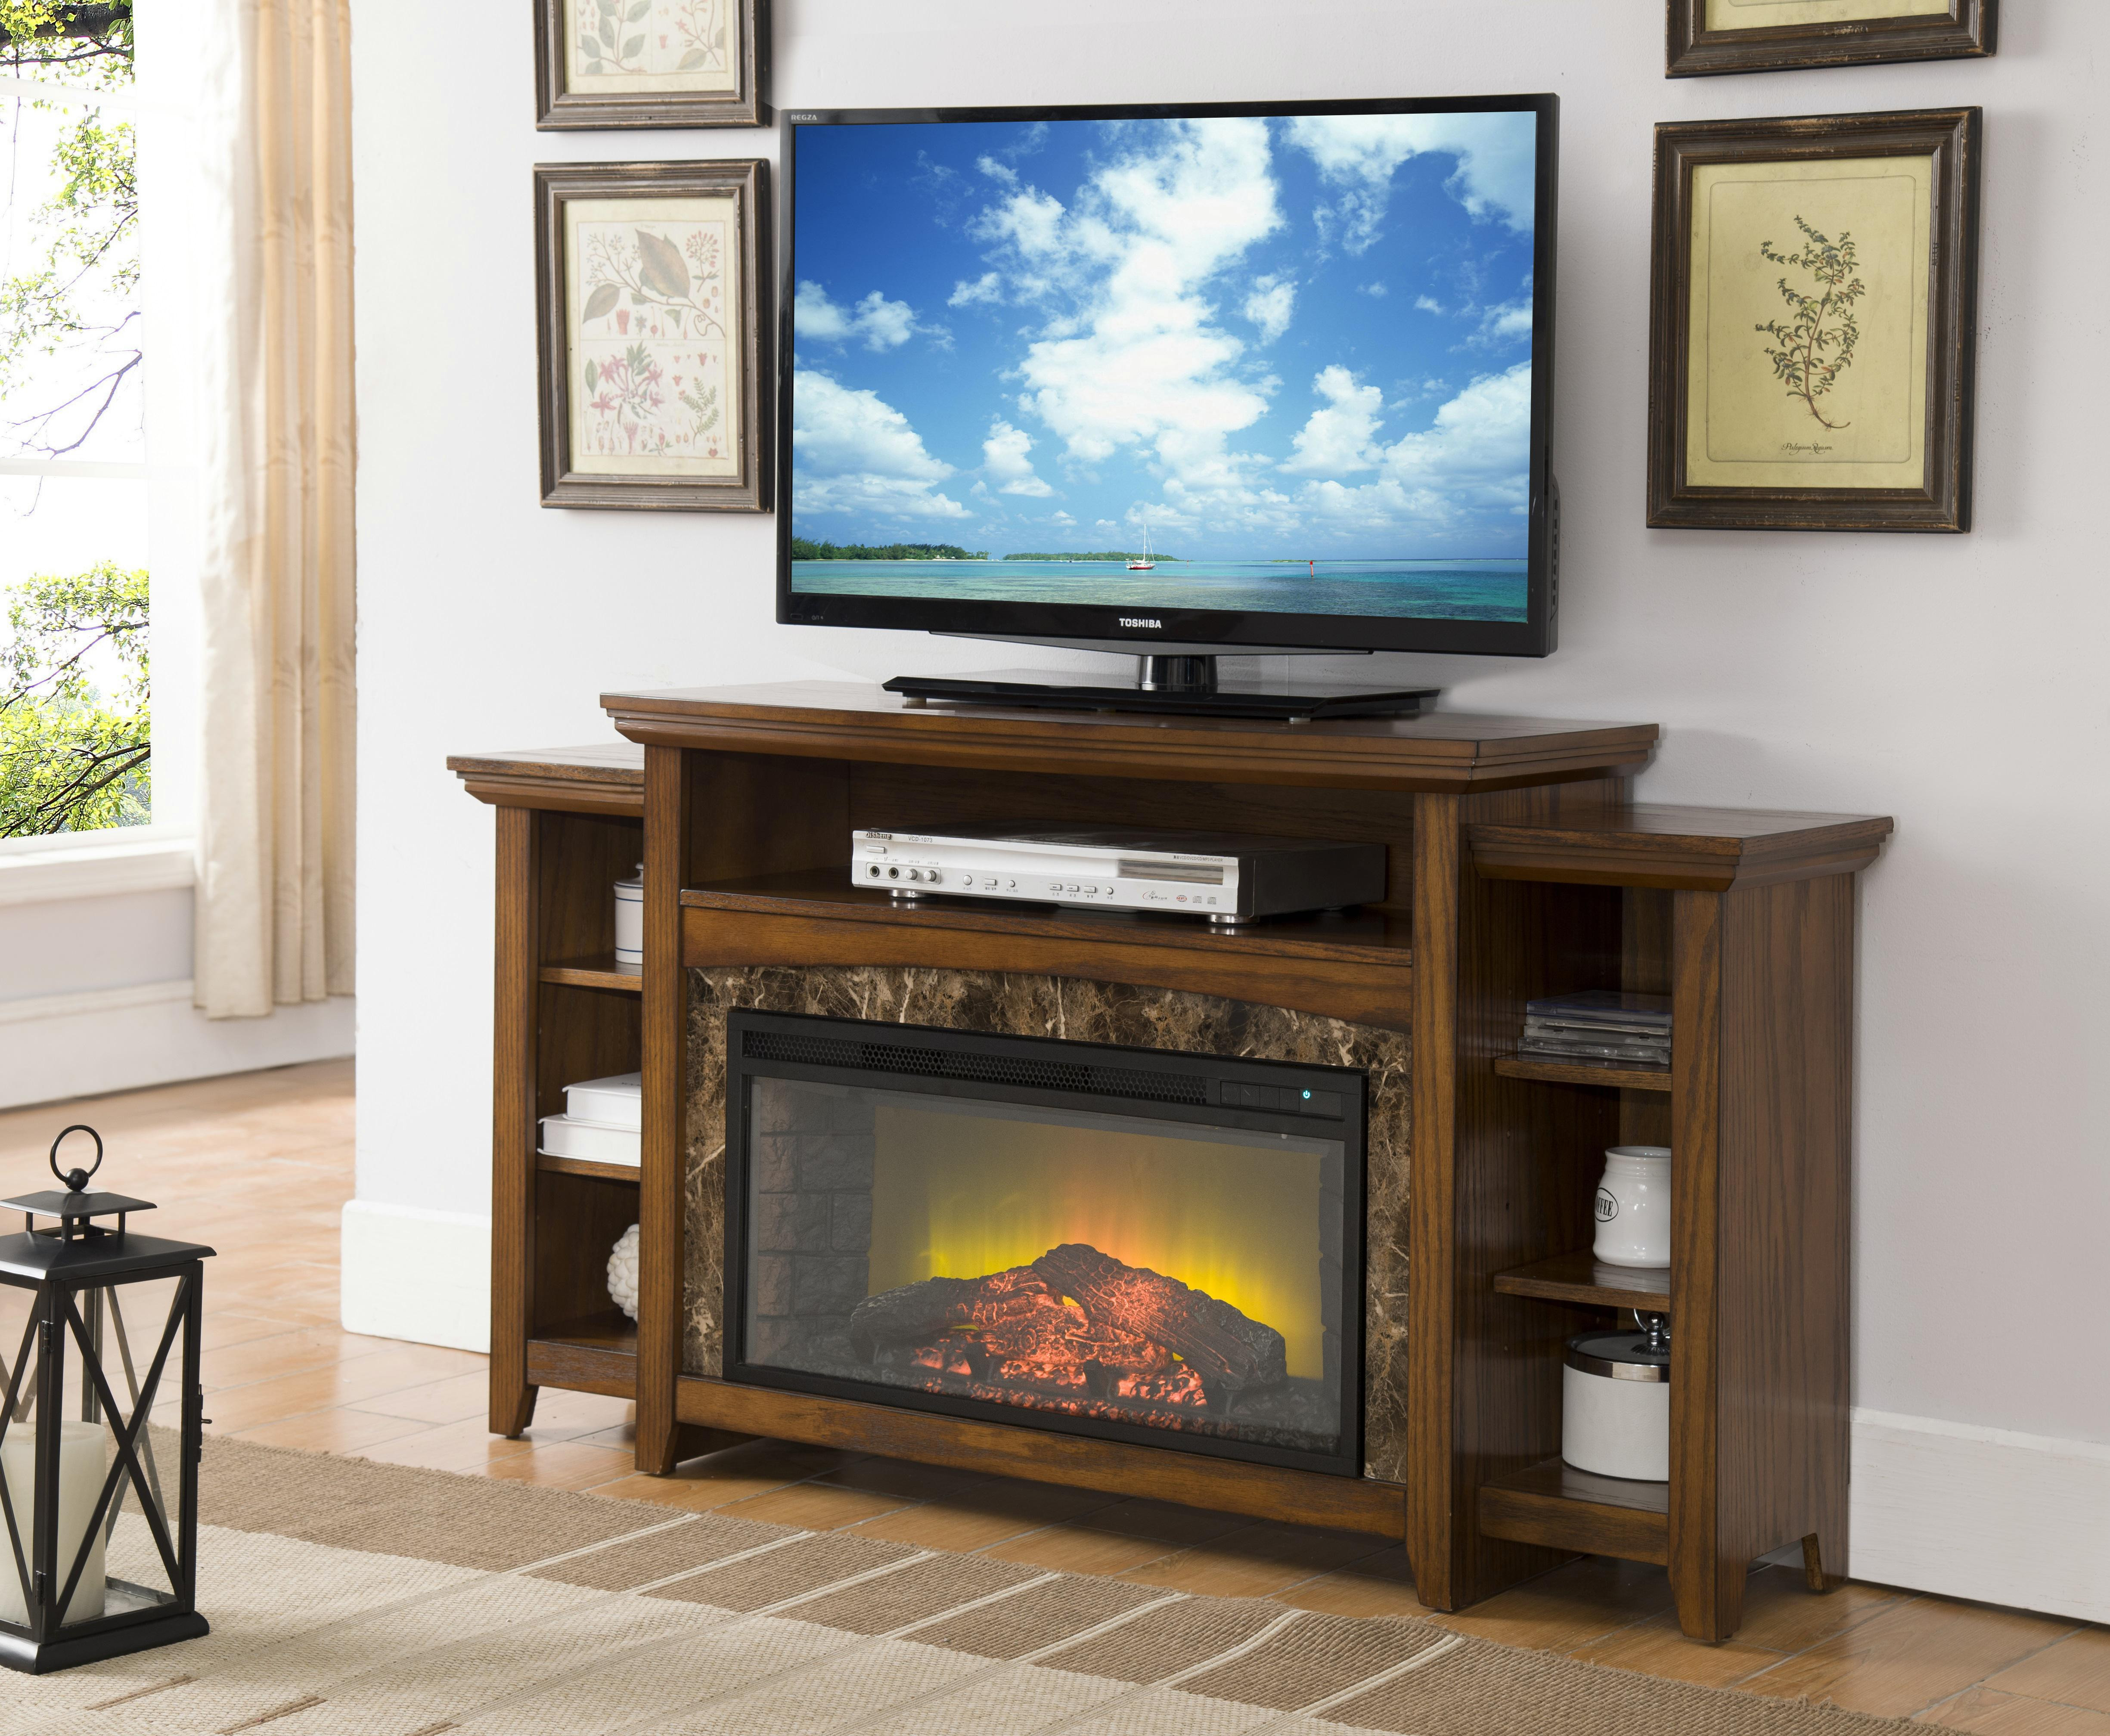 Best ideas about Kmart Fireplace Tv Stand . Save or Pin Electric Fireplace Decor Now.